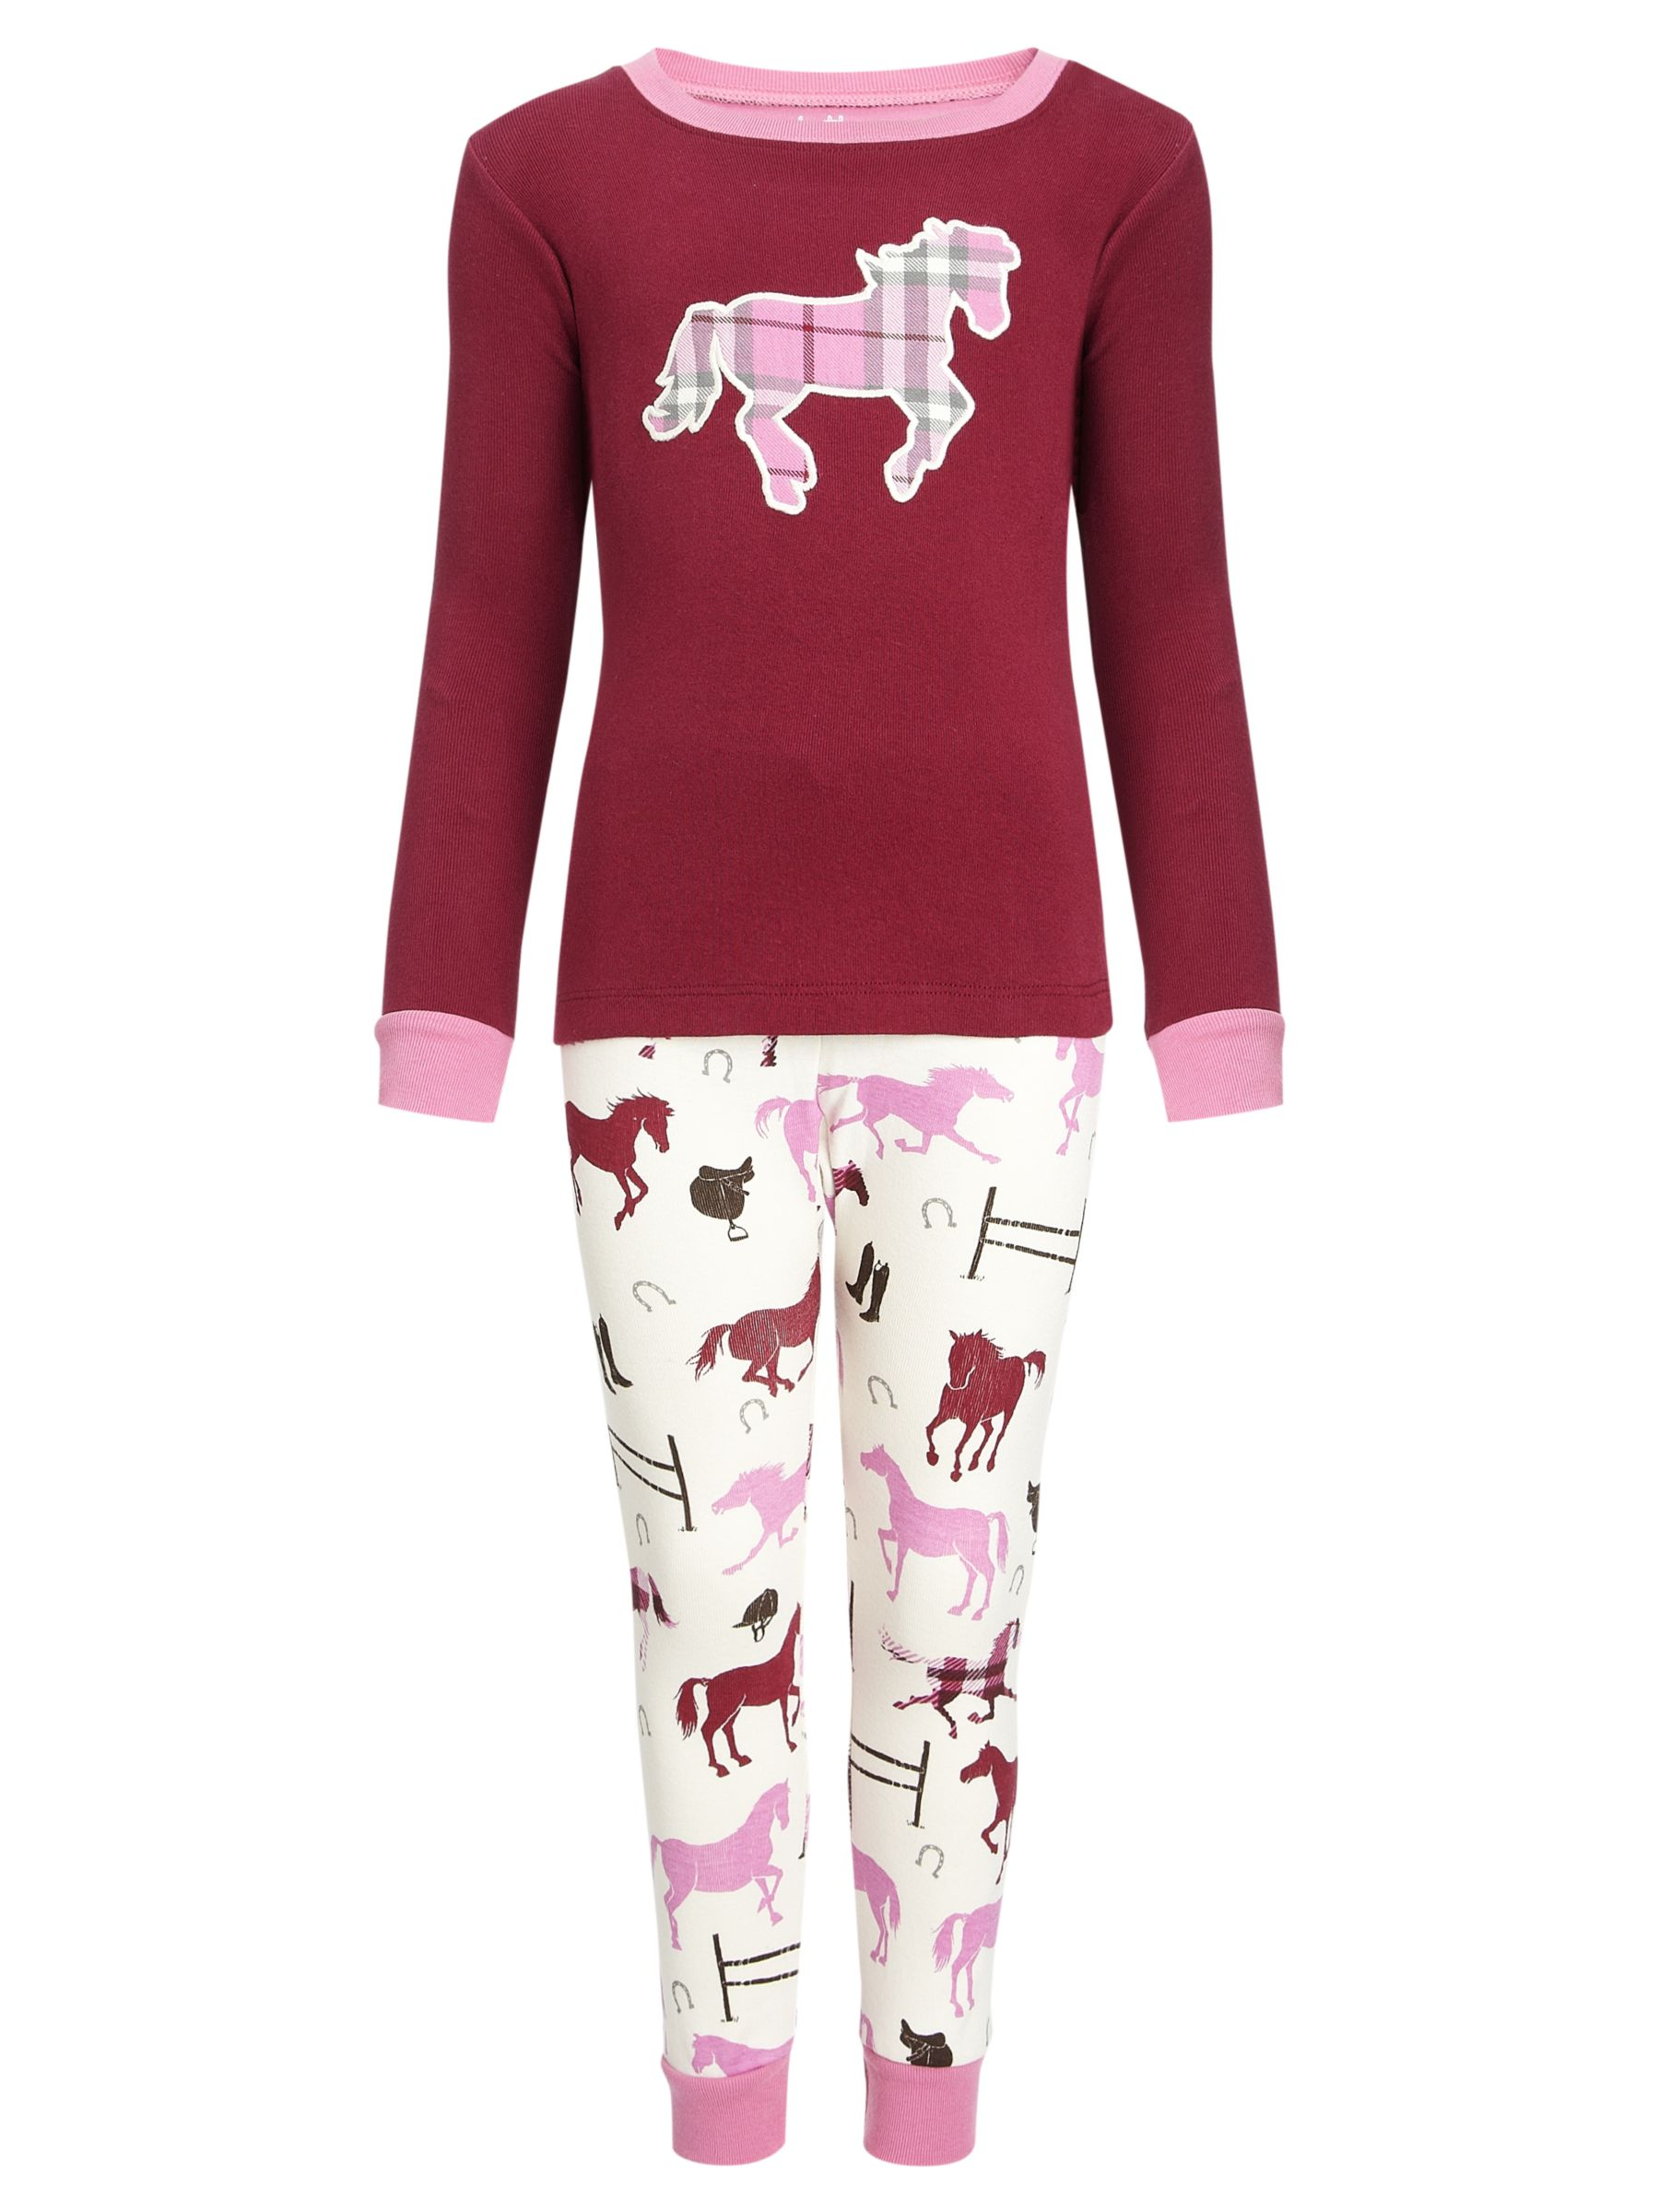 Hatley Plaid Horse Applique Pyjamas, Red/Pink